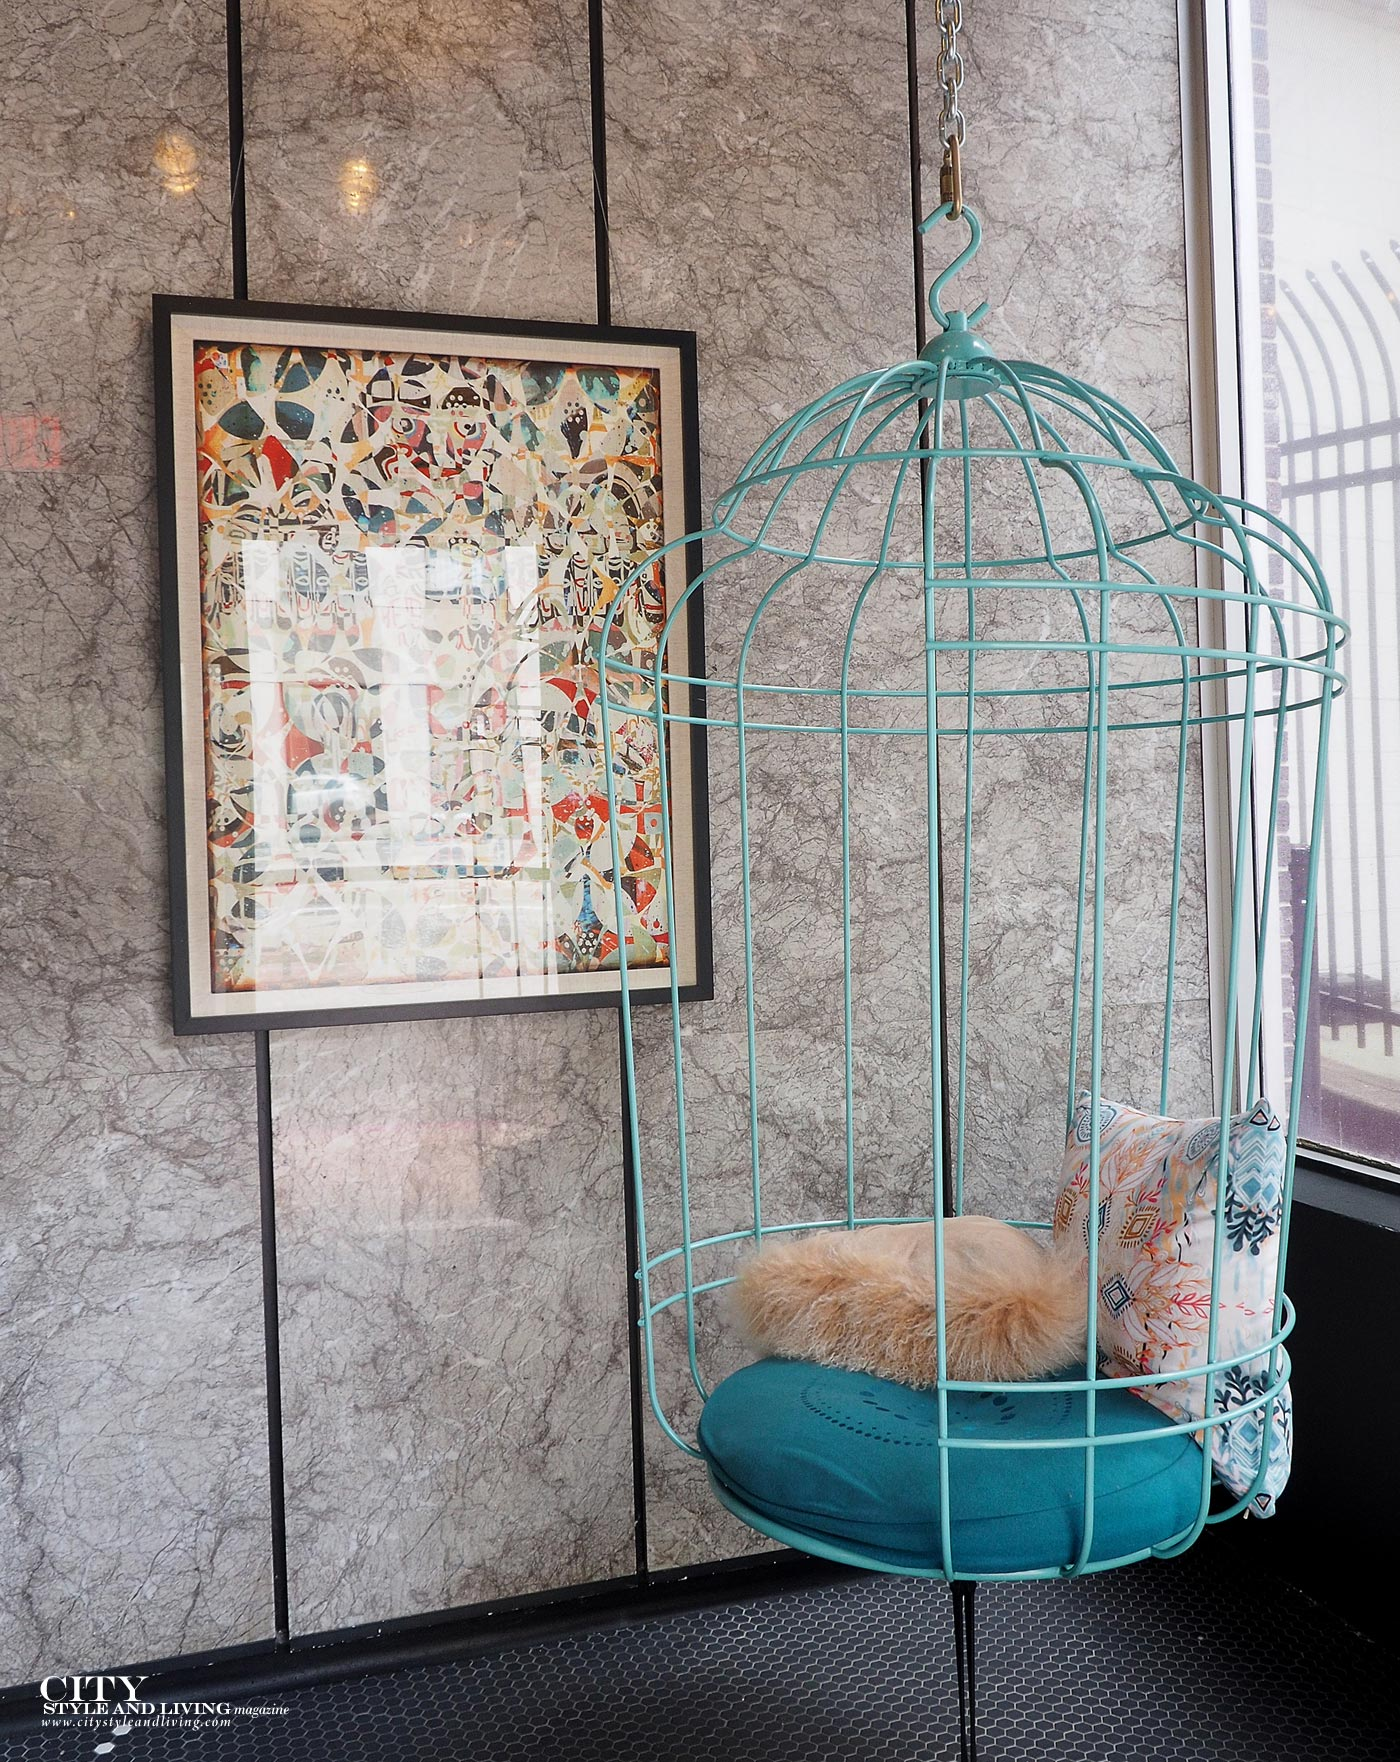 City Style and Living Moxy New Orleans birdcage at entrance